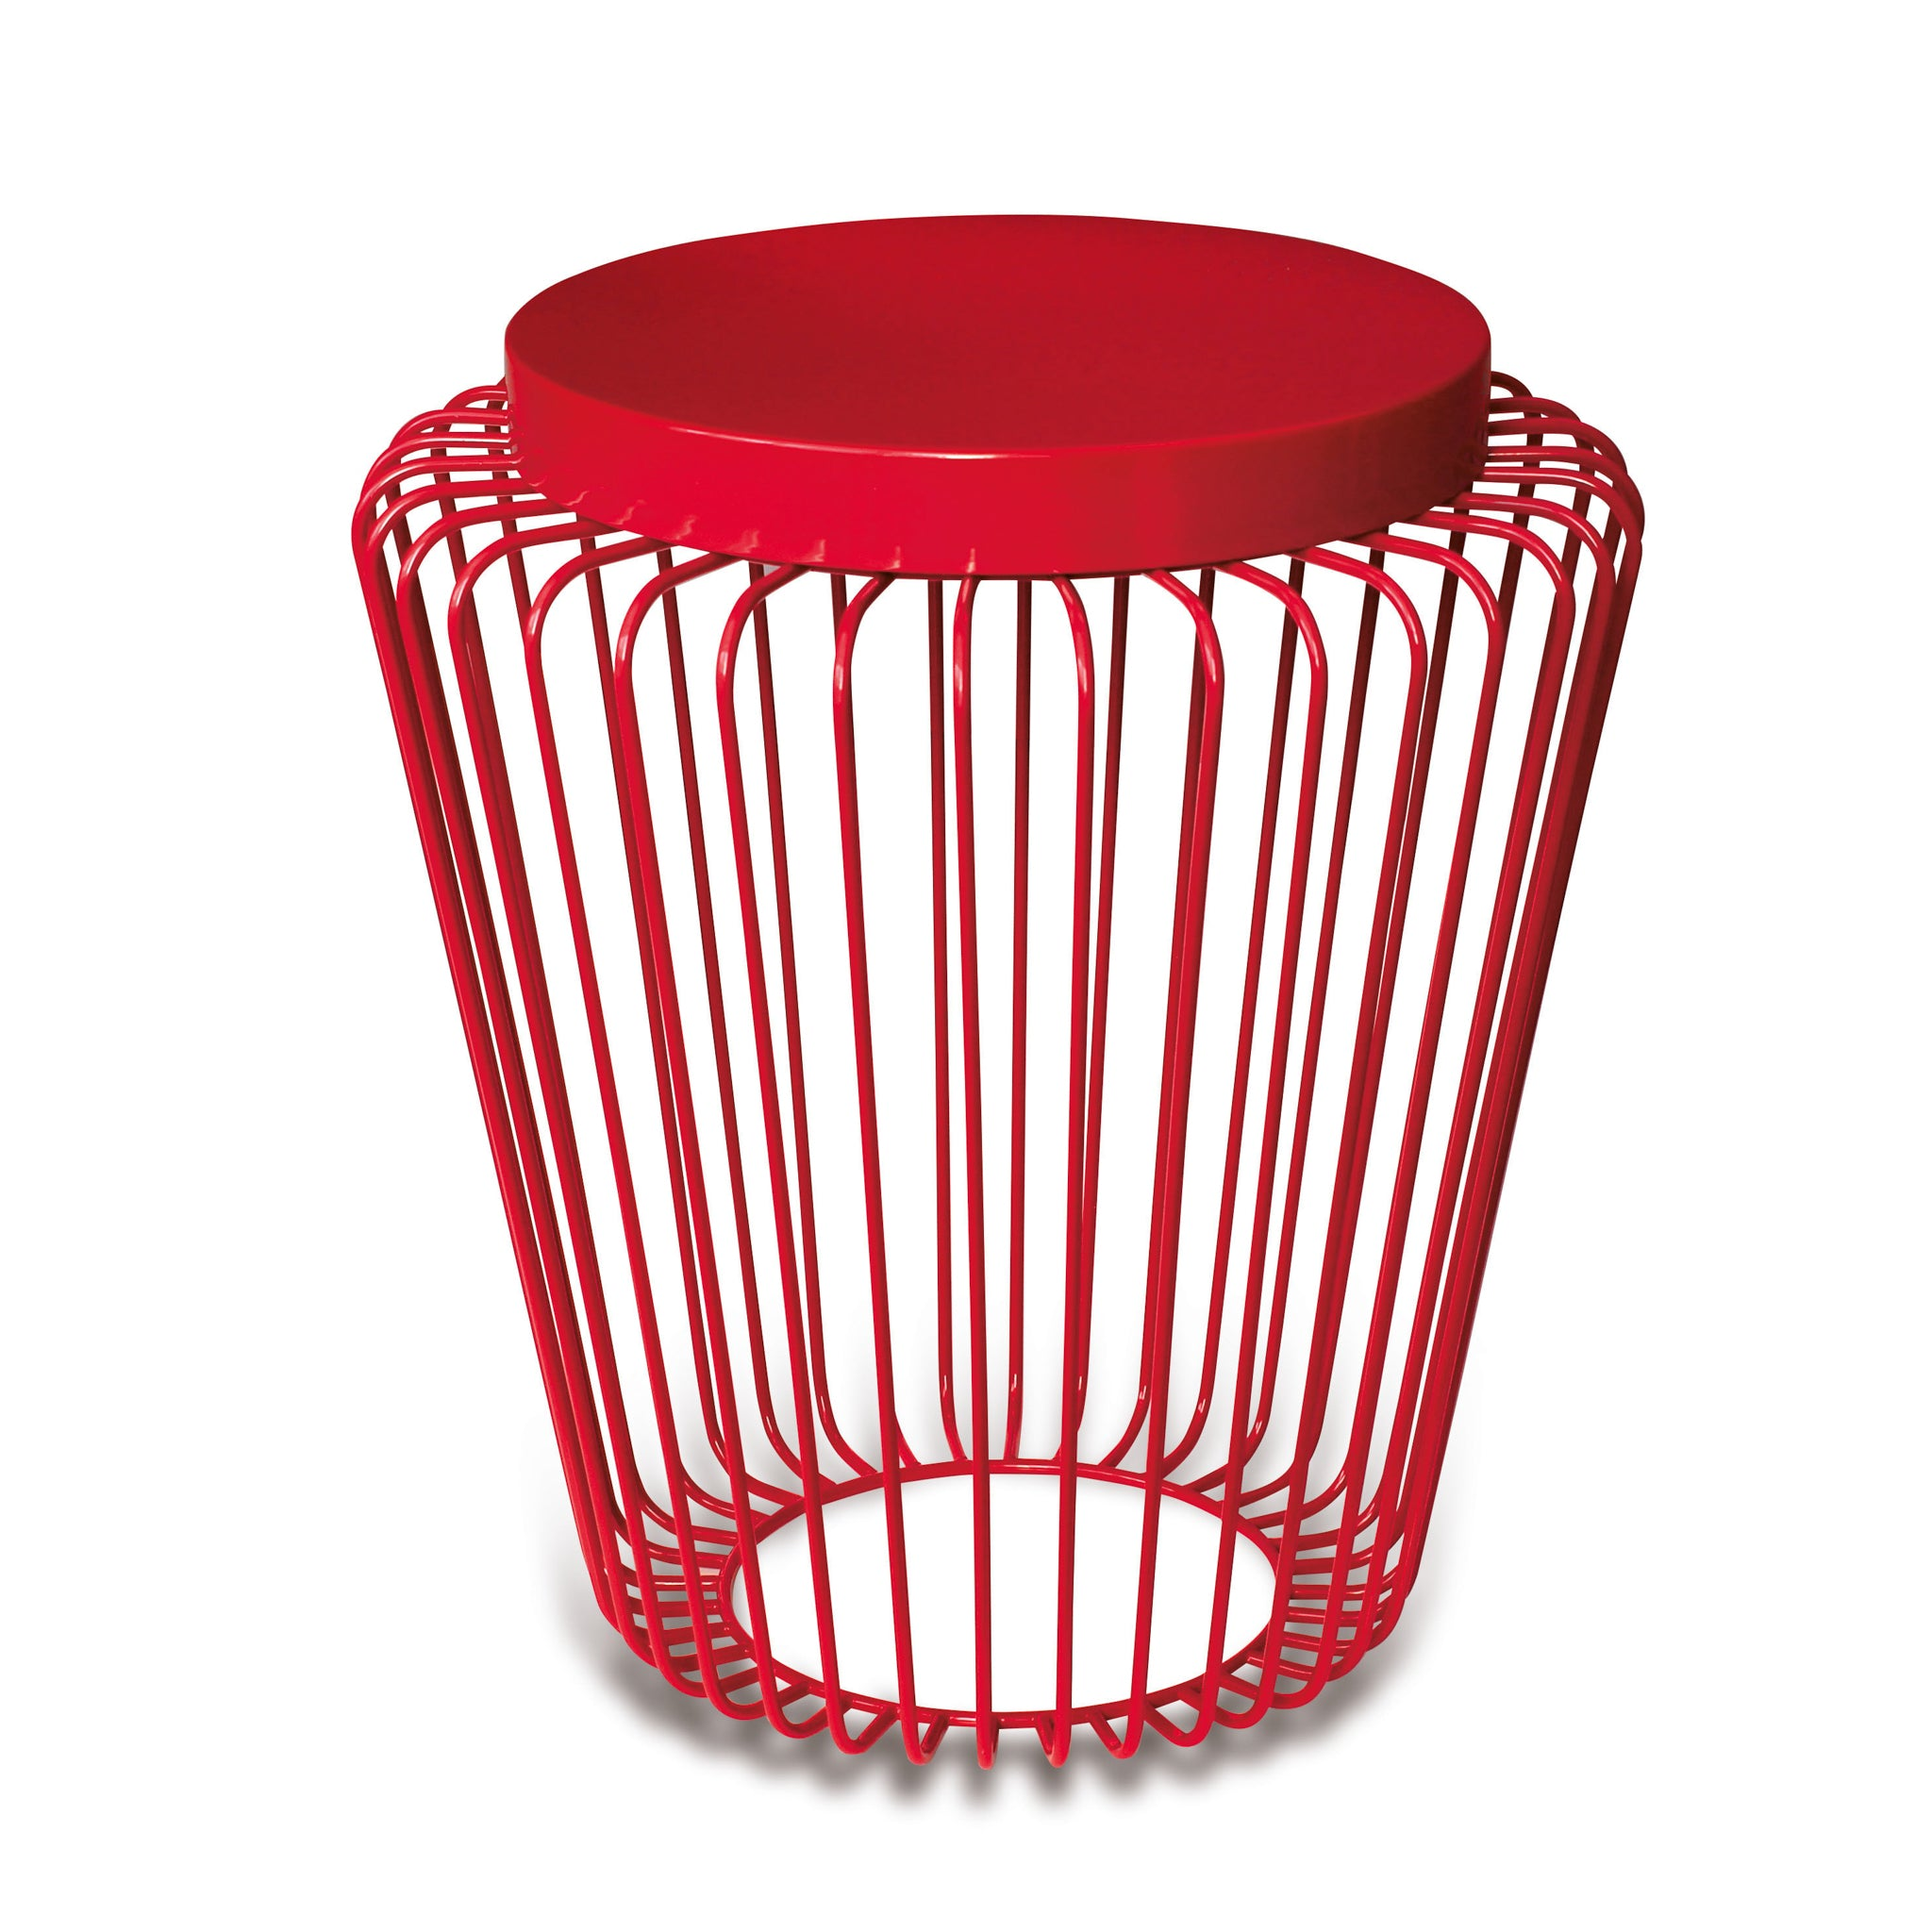 Cage Cordless Floor Light - Red | Nicholas Engert Interiors